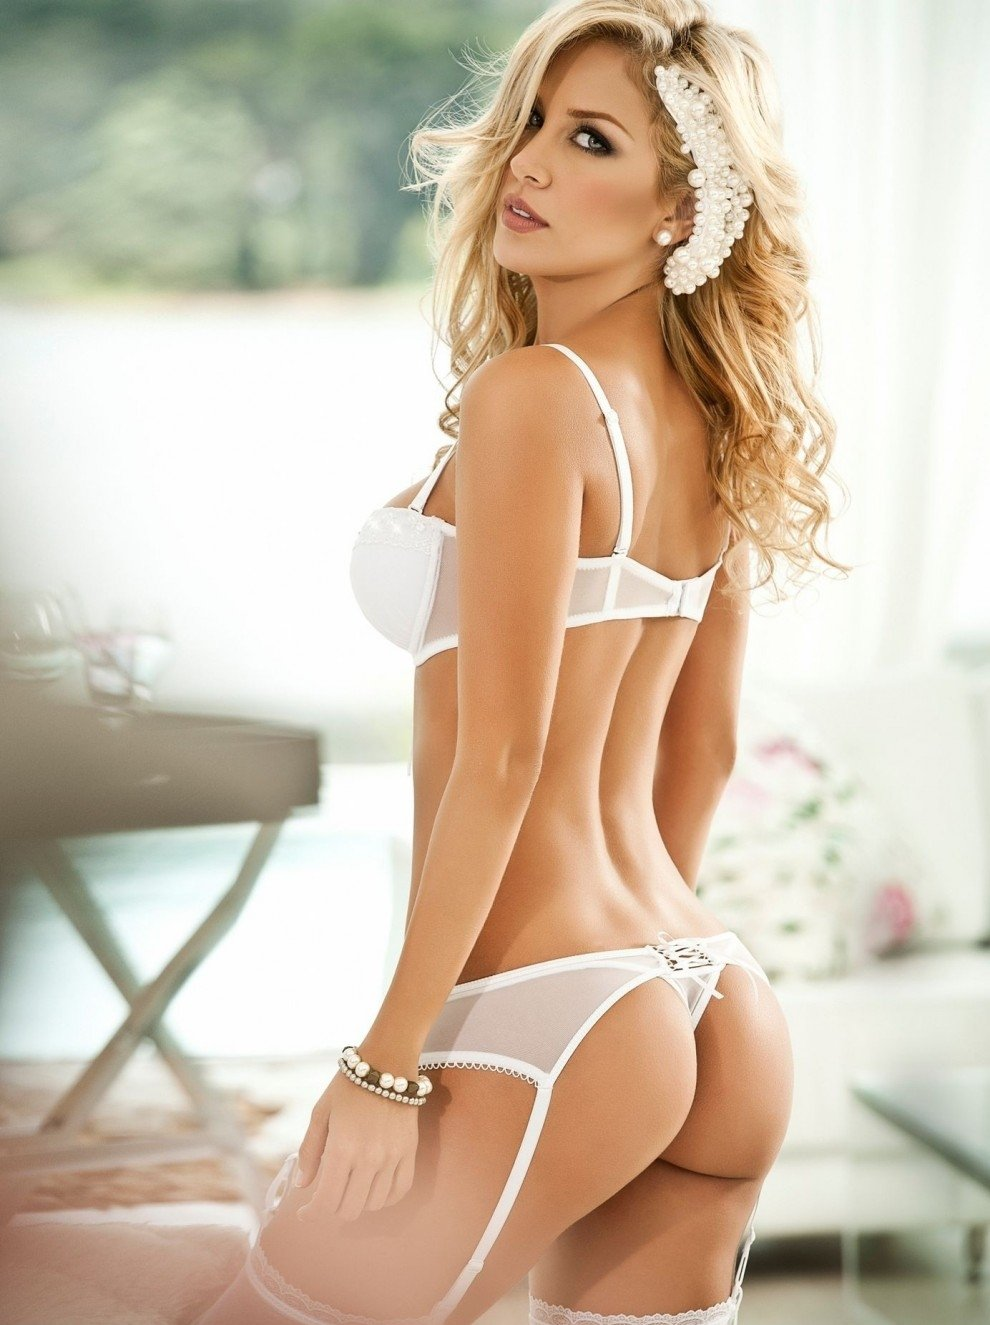 Really hot and sexy girls — photo 10